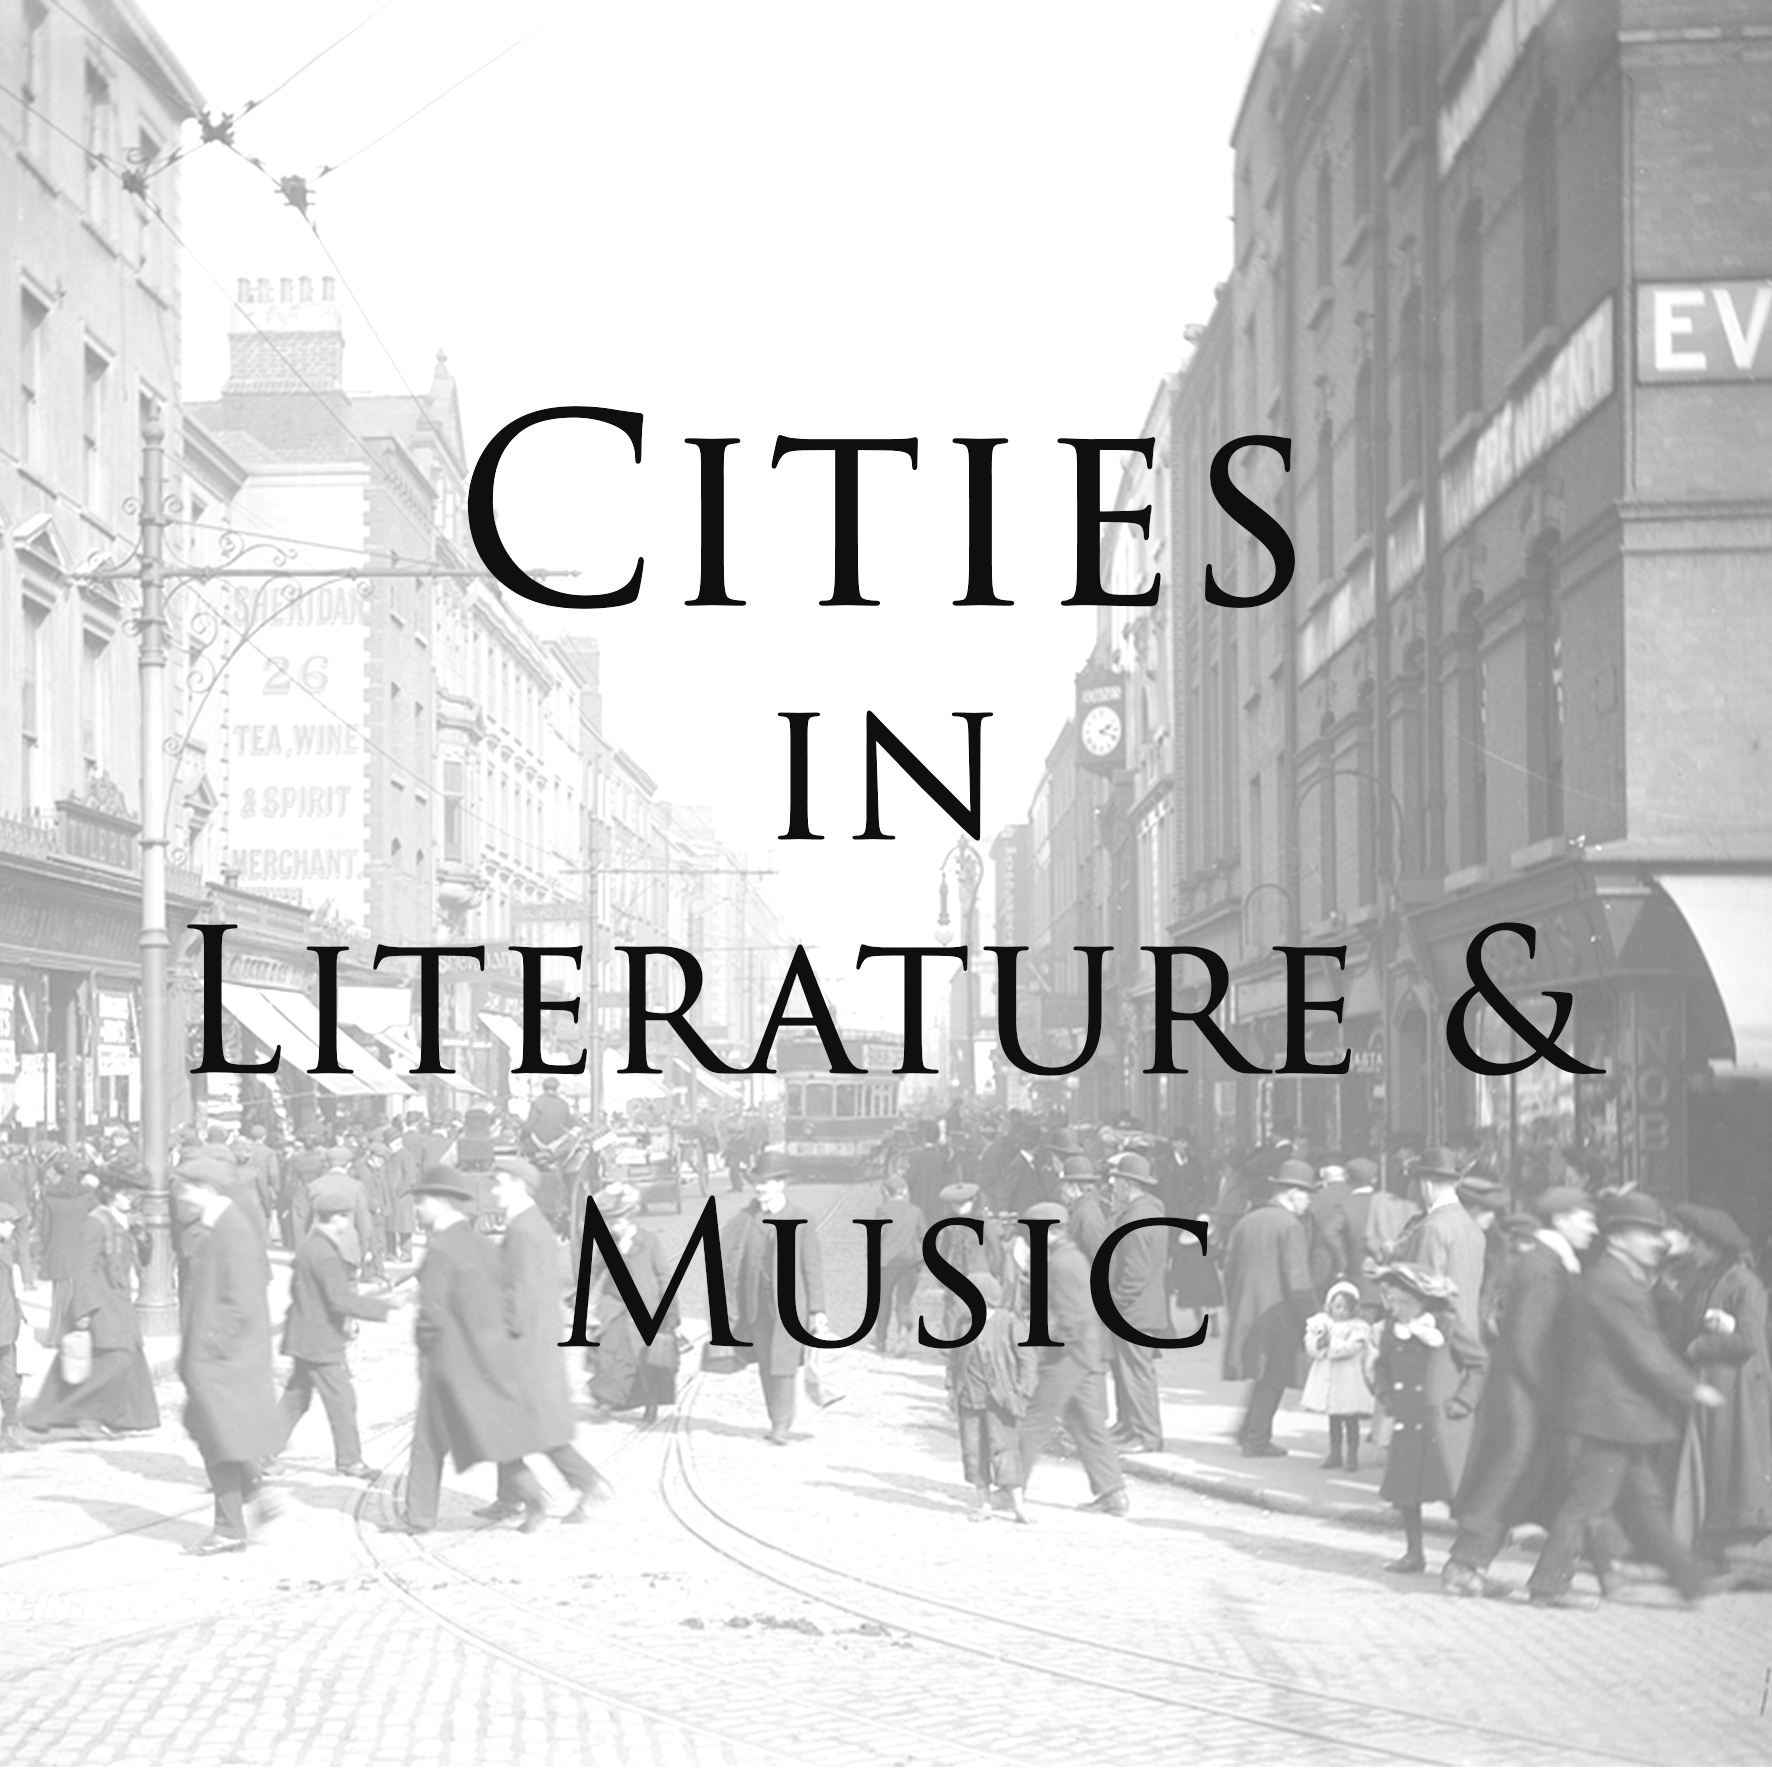 Cities in Literature and Music Autumn - Winter 2018 Updated Image